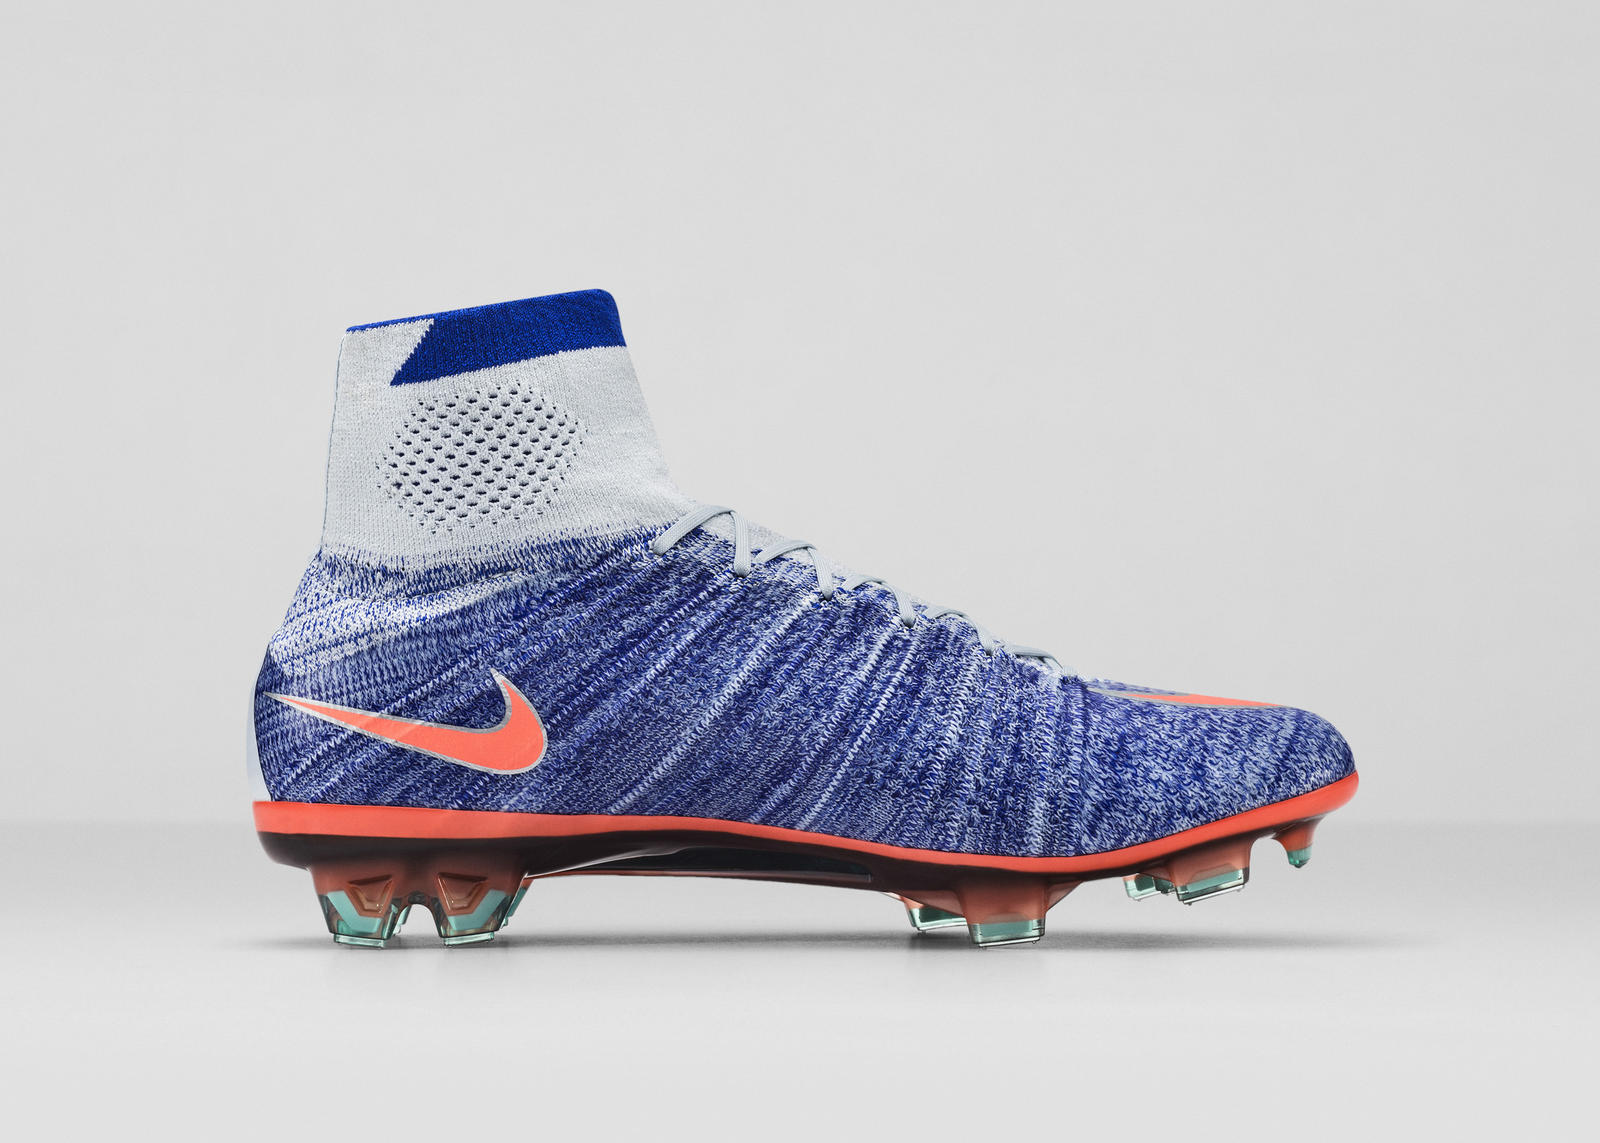 791e48378e4 NIKE SOCCER UNVEILS ALL-NEW WOMEN S CLEAT PACK FOR 2016 - Nike News